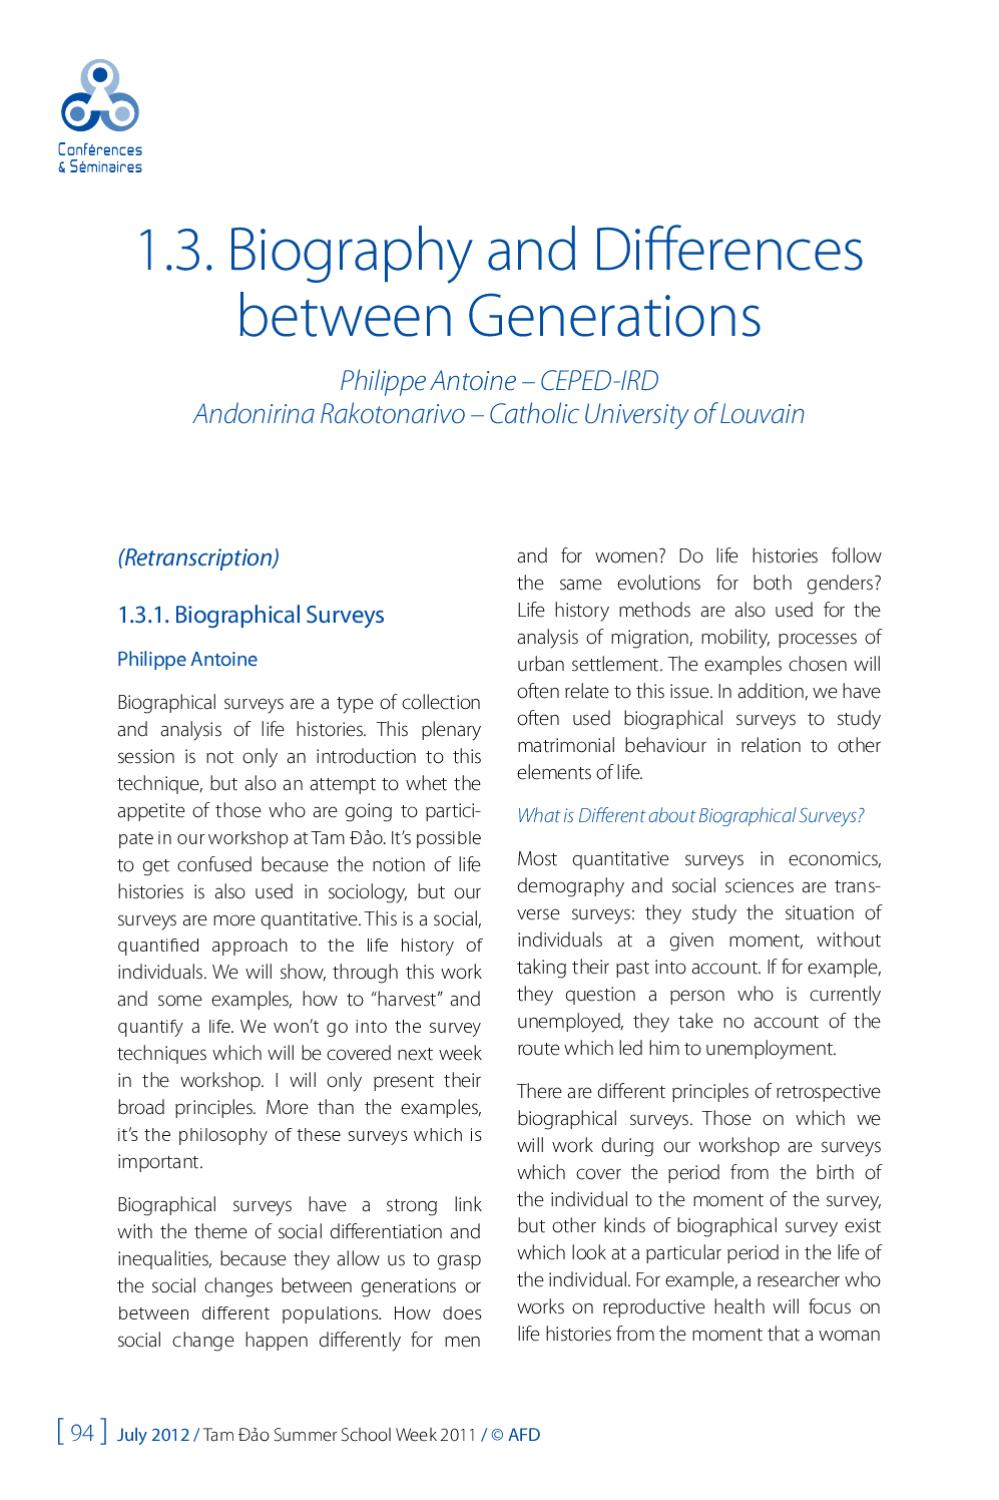 Social Differentiation and Inequalities by Agence Française